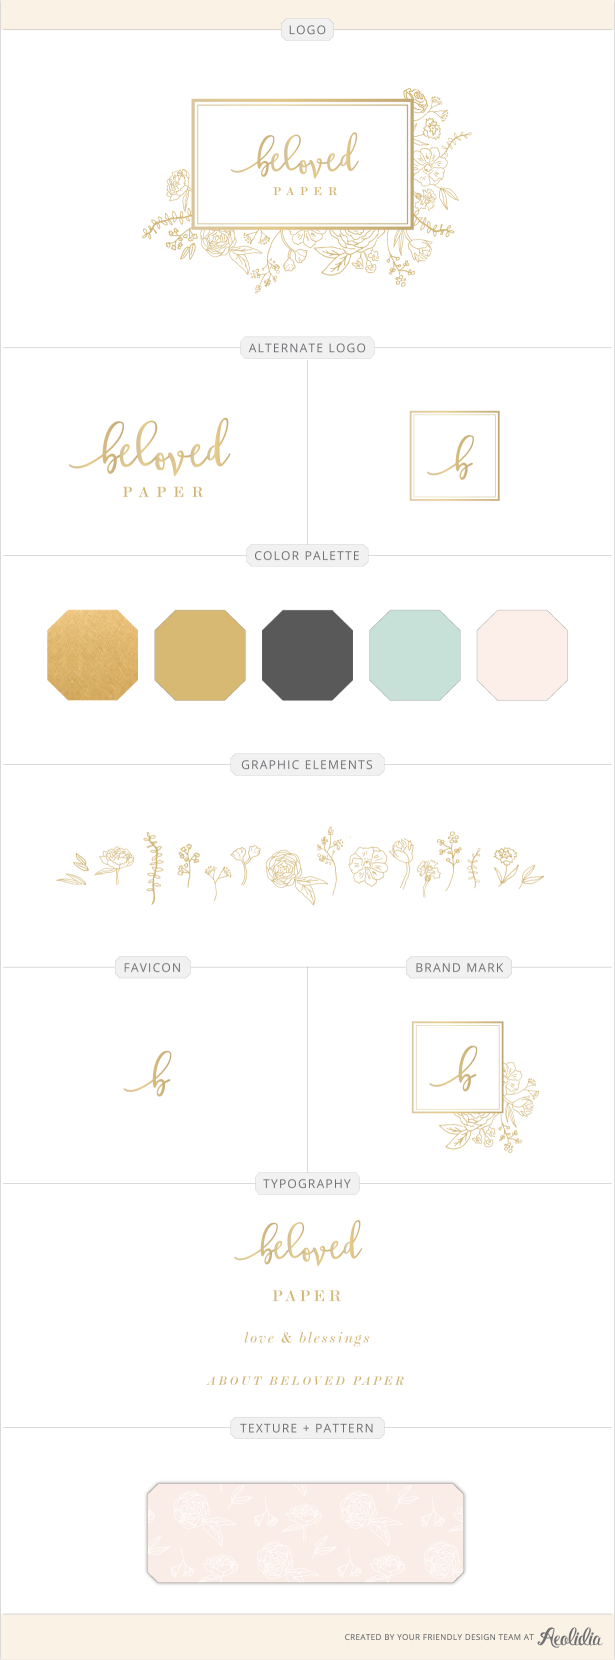 Belove Paper logo. A logo and brand identity for a custom stationery designer specializing in weddings.